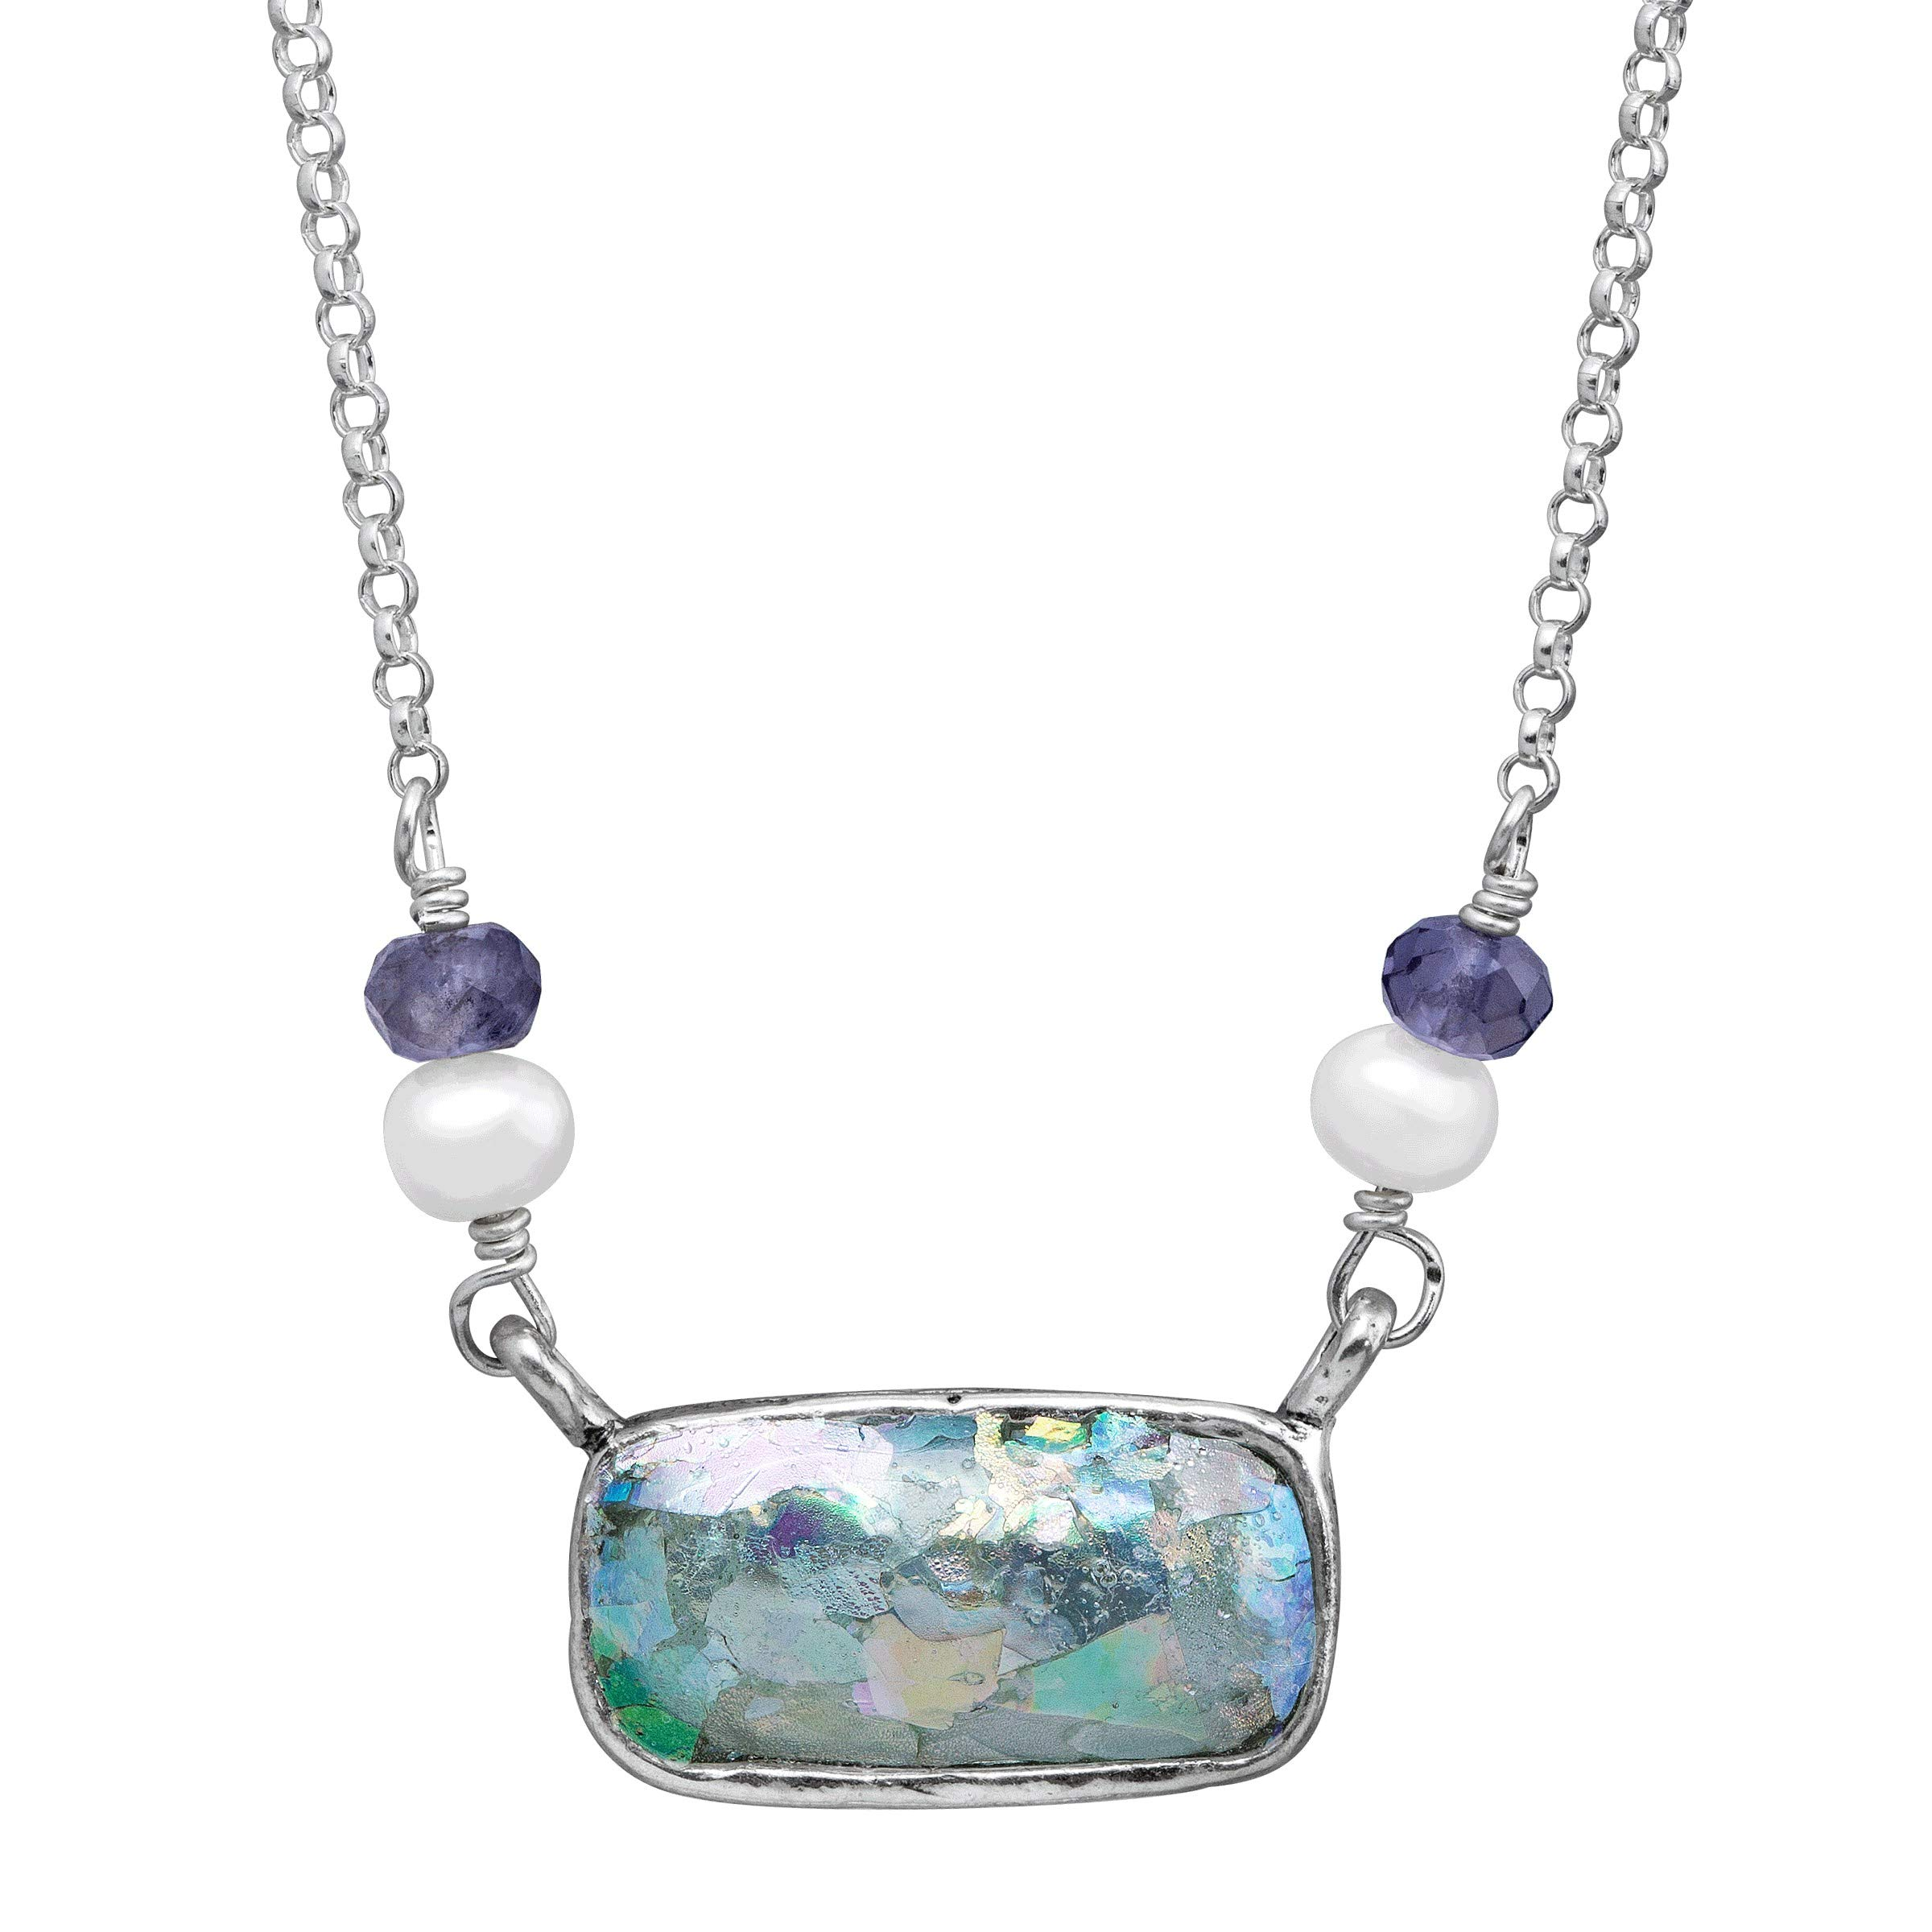 Silpada 'Pons Drusi' 4-4.5 mm Freshwater Cultured Pearl & Roman Glass & Natural Iolite Necklace in Sterling Silver